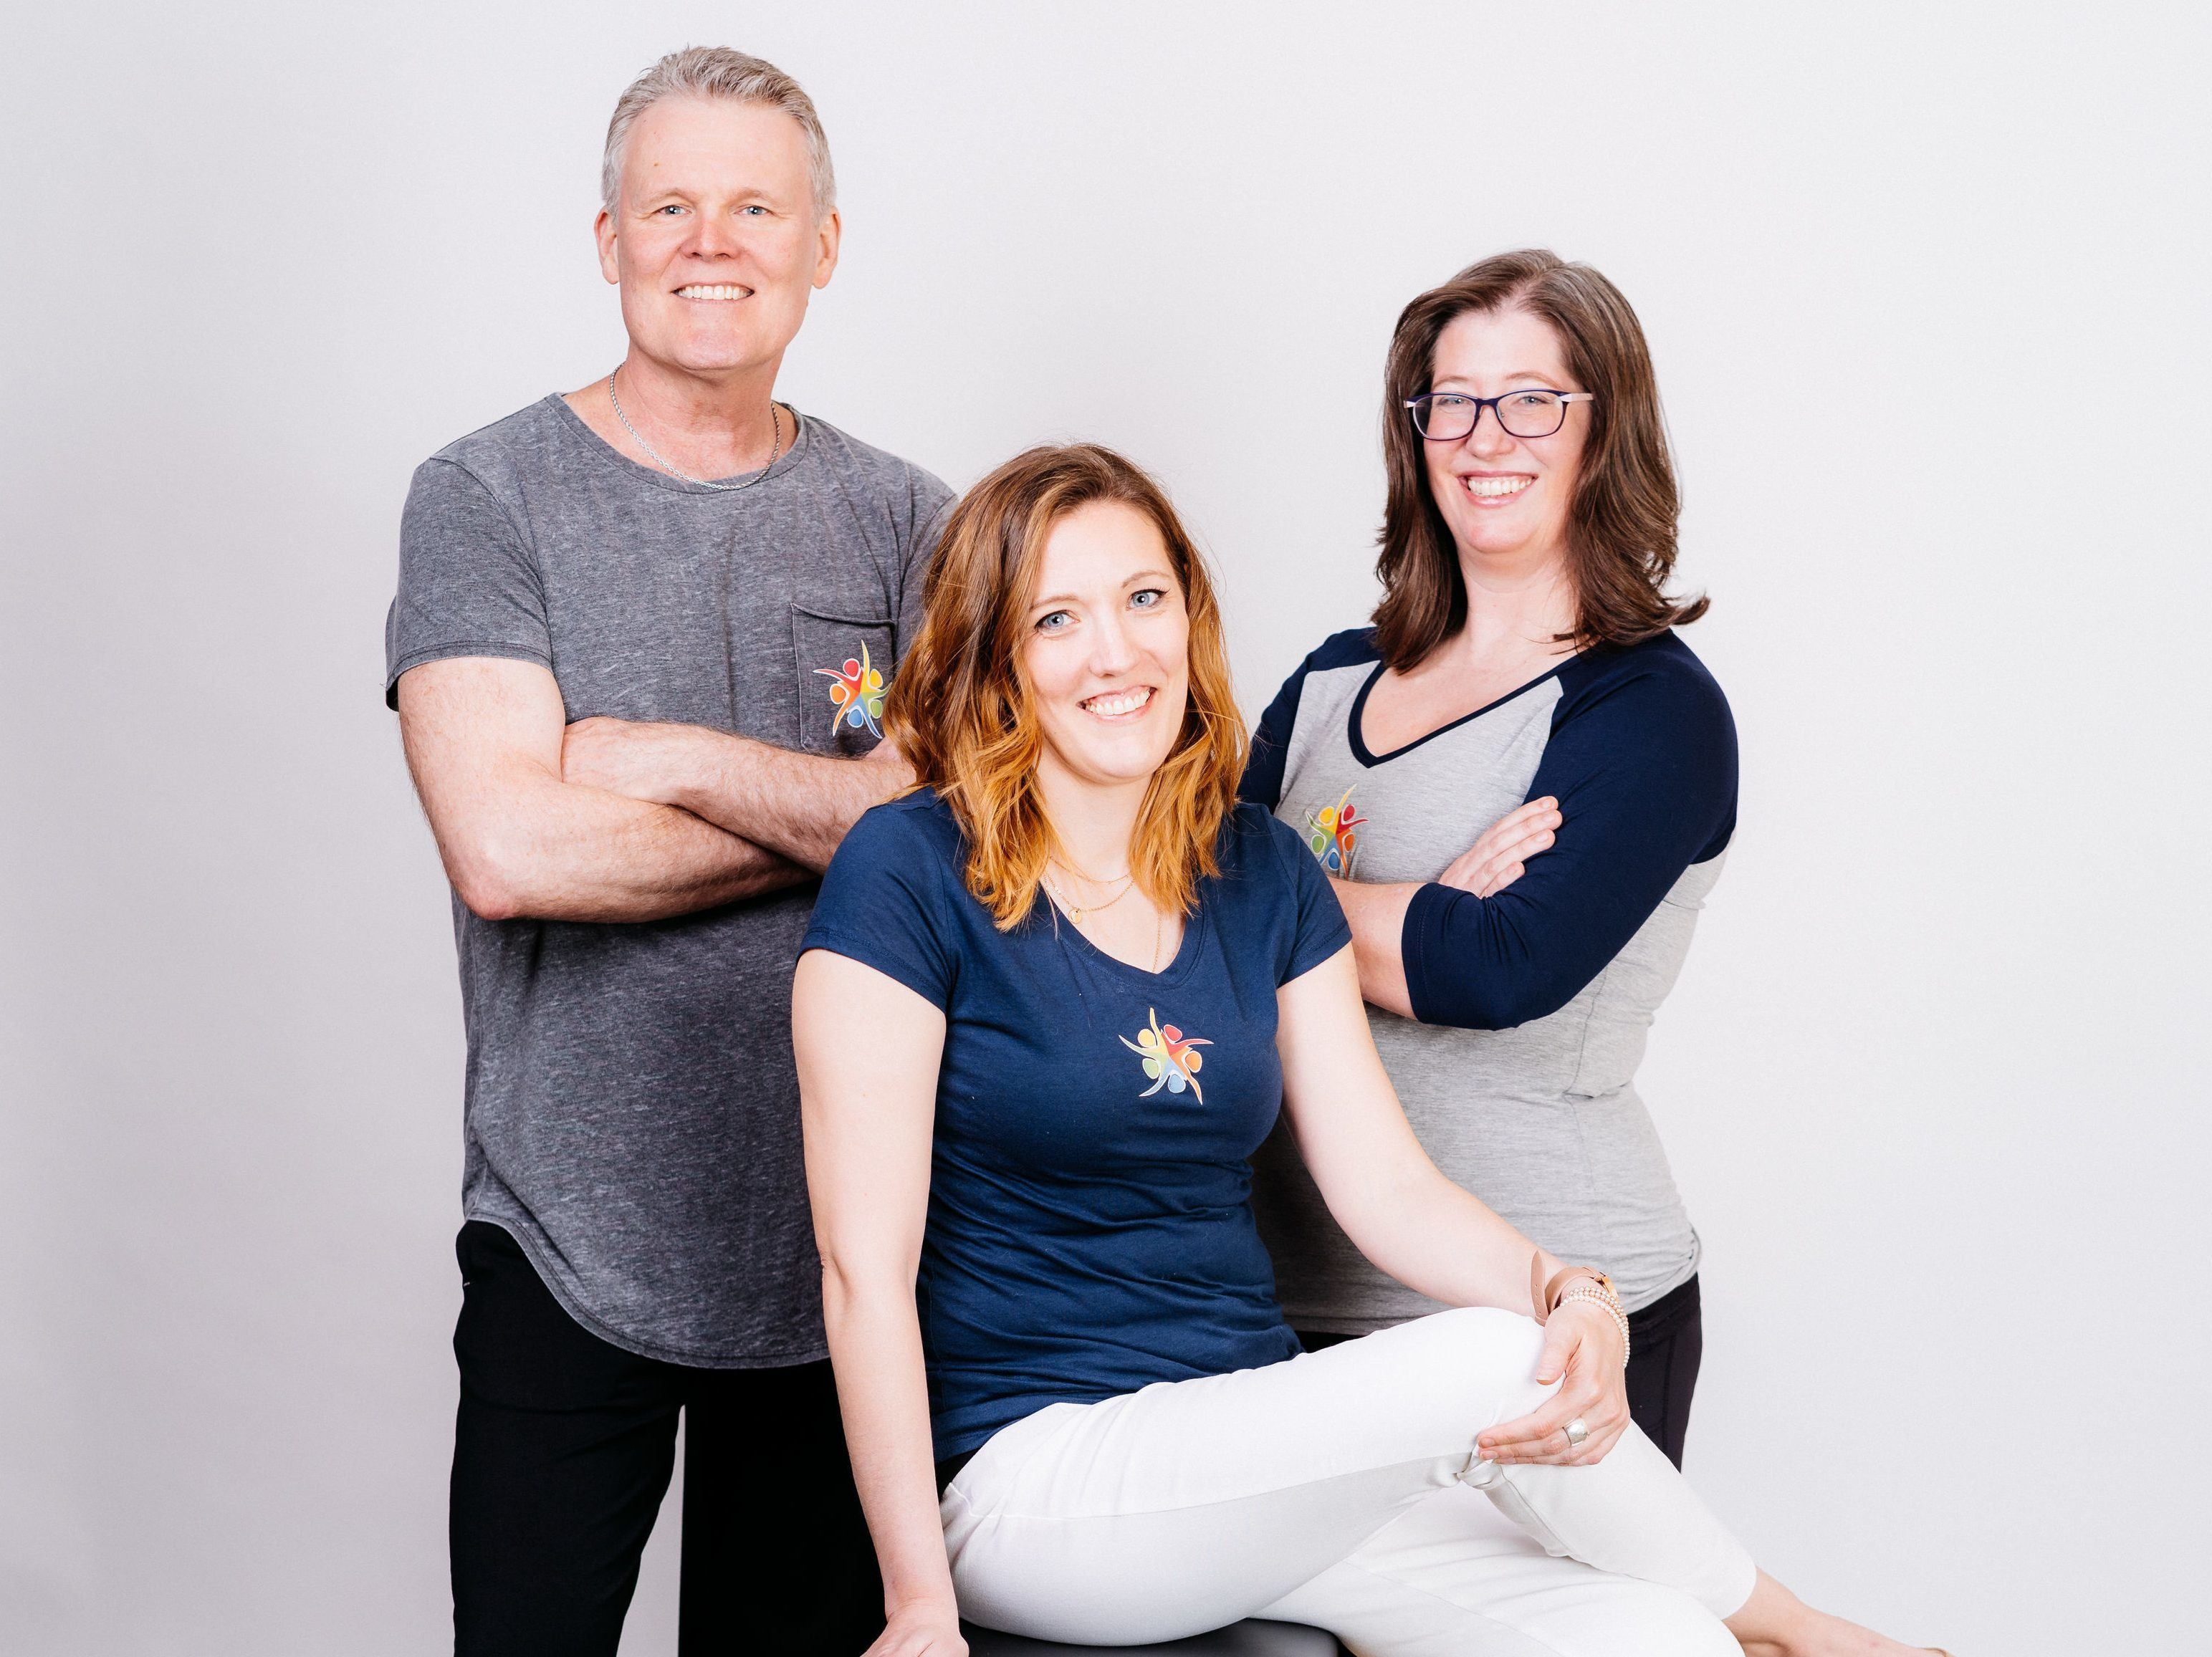 The Pilates Business Pros, Mark Firehammer, Laurie Johnson, Katrina Hawley